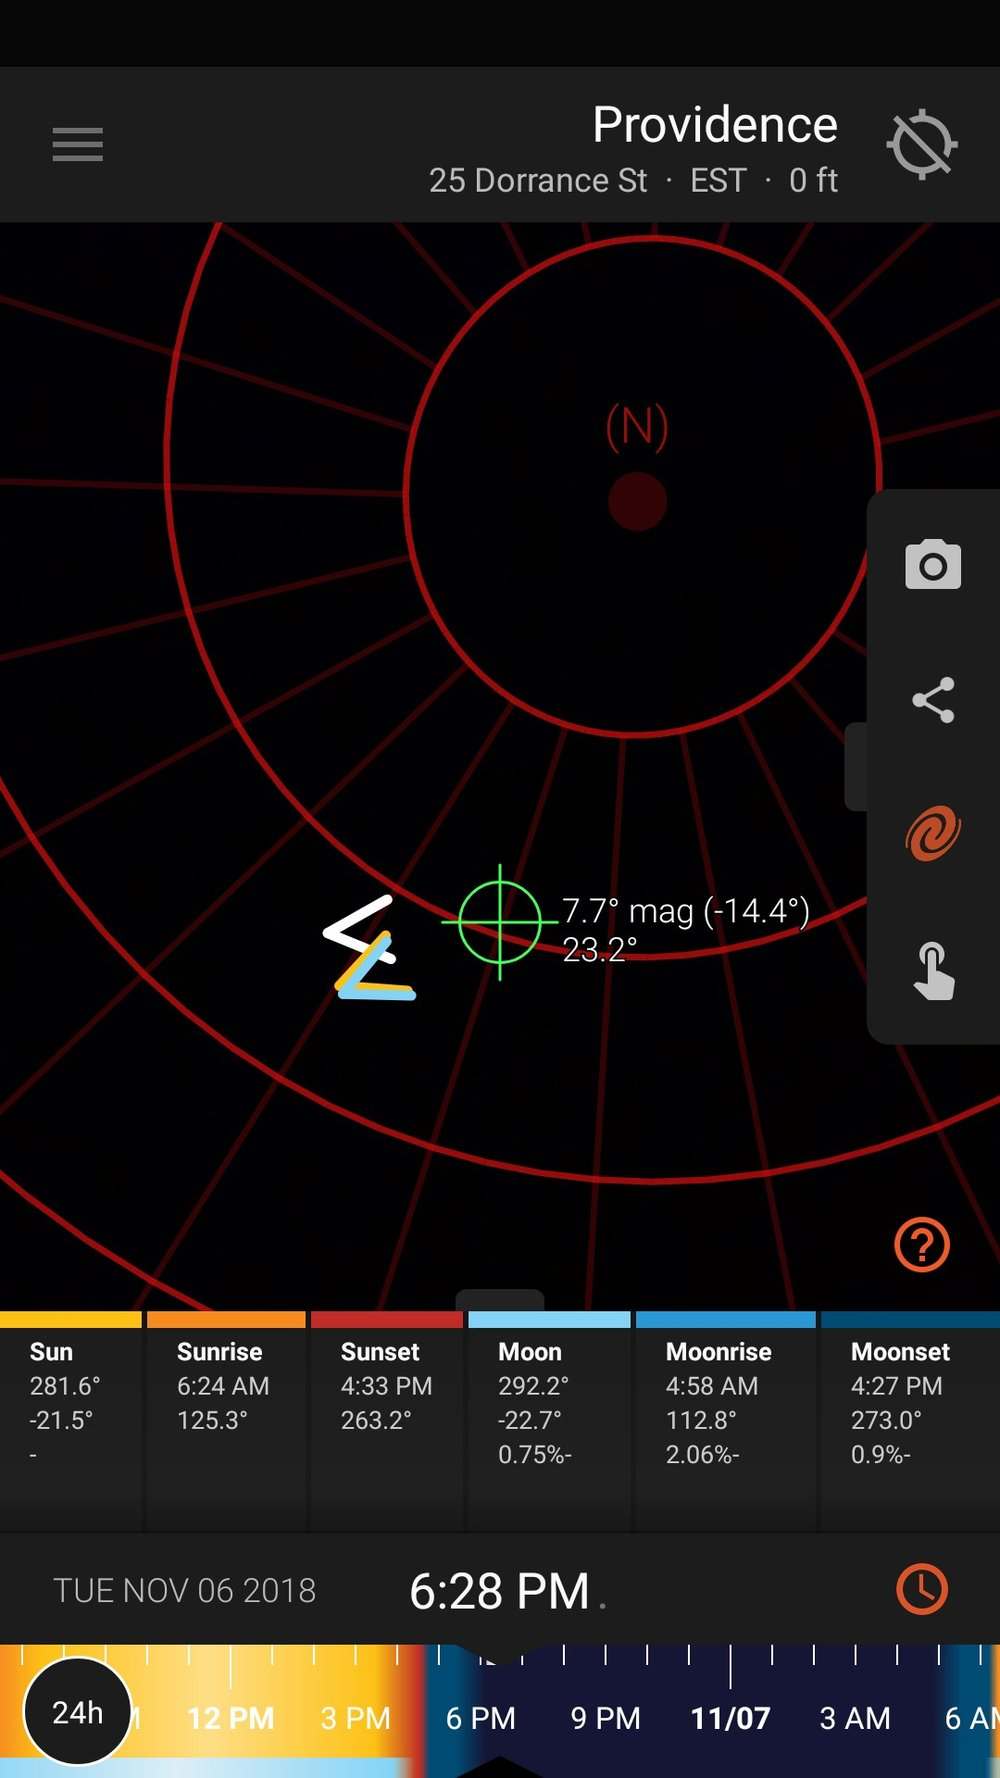 Our favorite app for planning any landscape photo shoot, even star trails, is  Sun Surveyor . It is a great tool for forecasting moon phases and moon rise and set times, finding the position of the North Star, and predicting how your star trails will look.